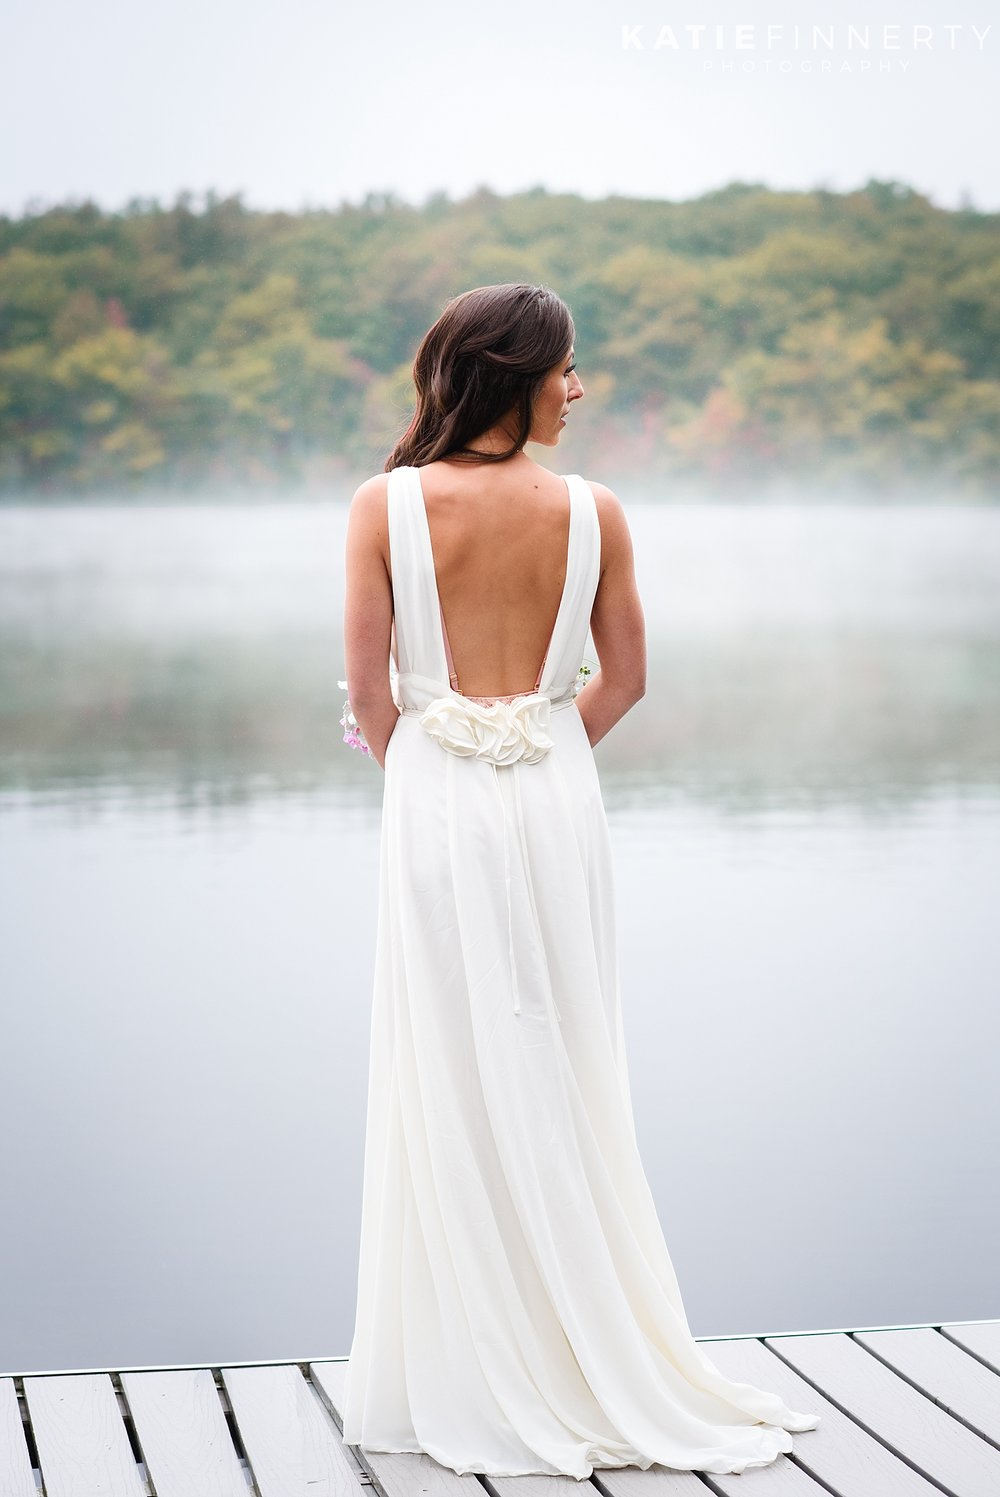 Oneonta Summer Wedding Photography